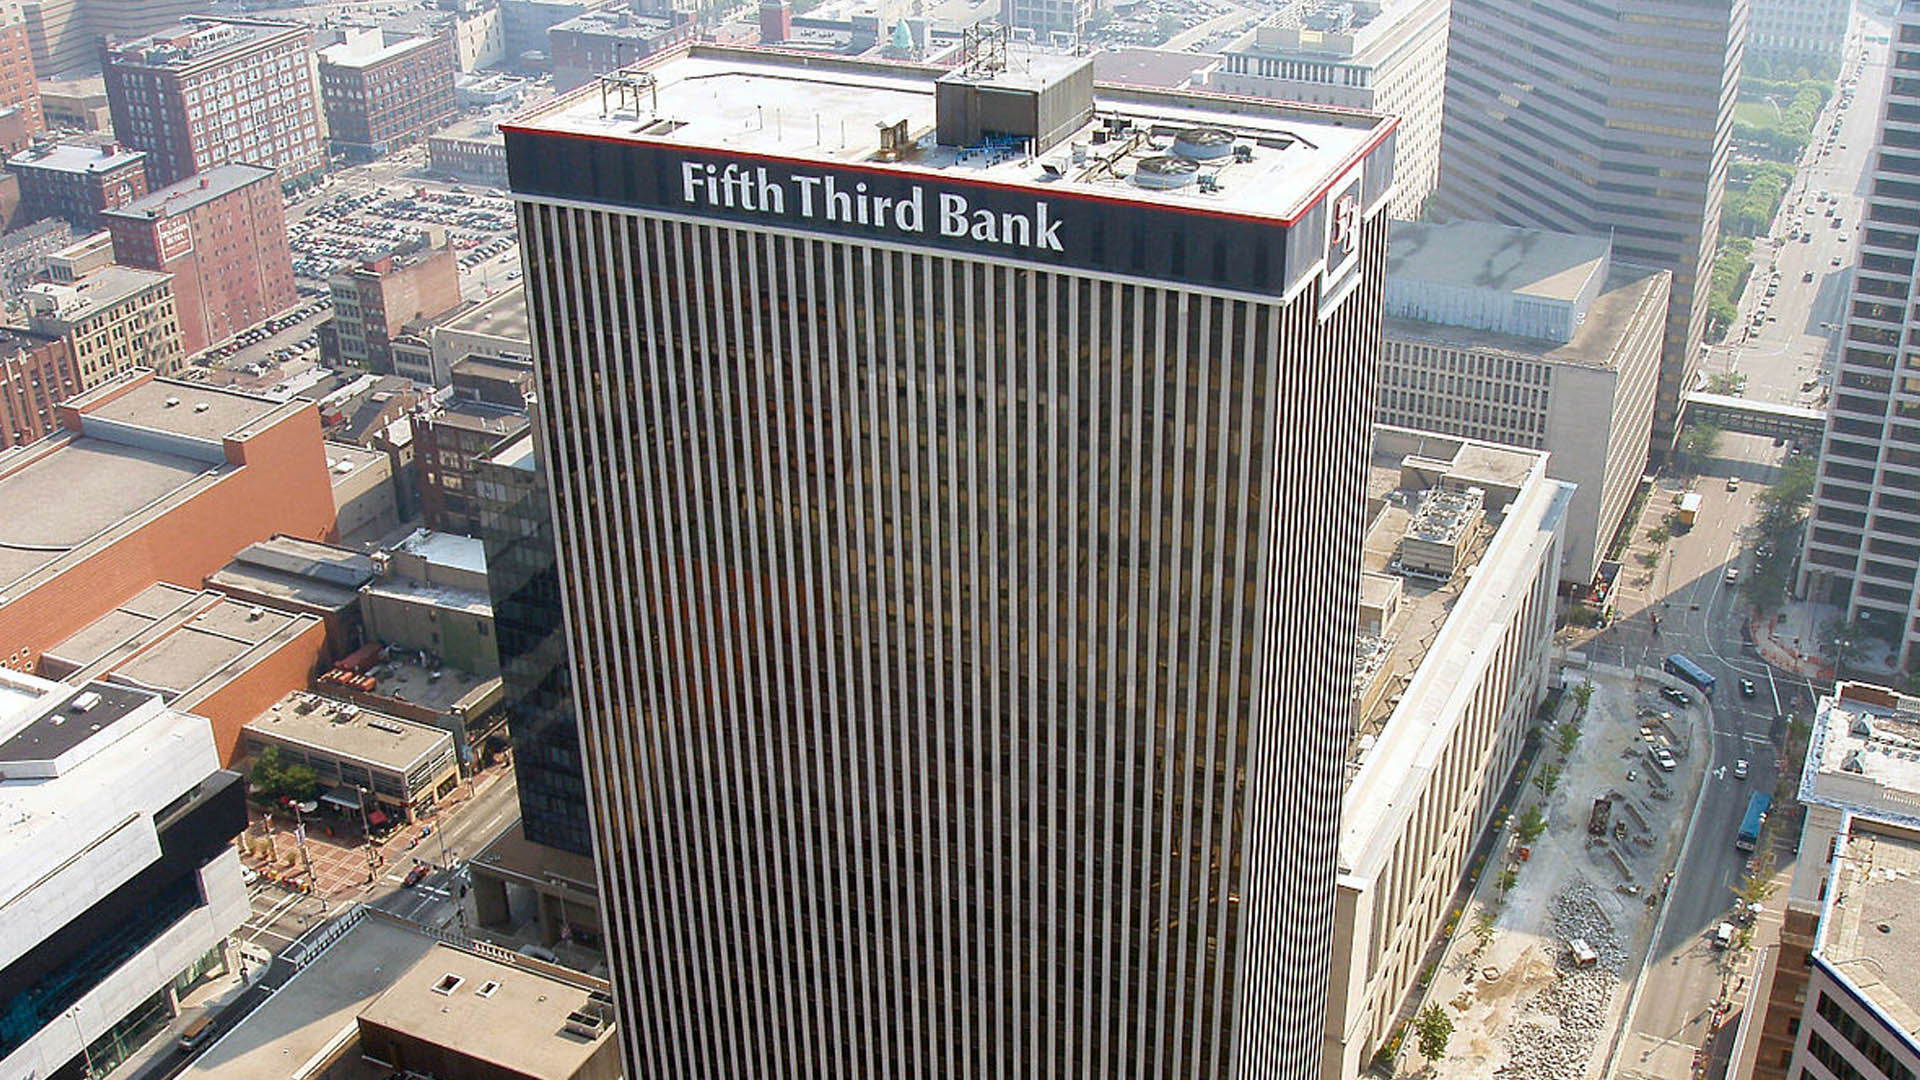 Fifth Third Bank Cincinnati